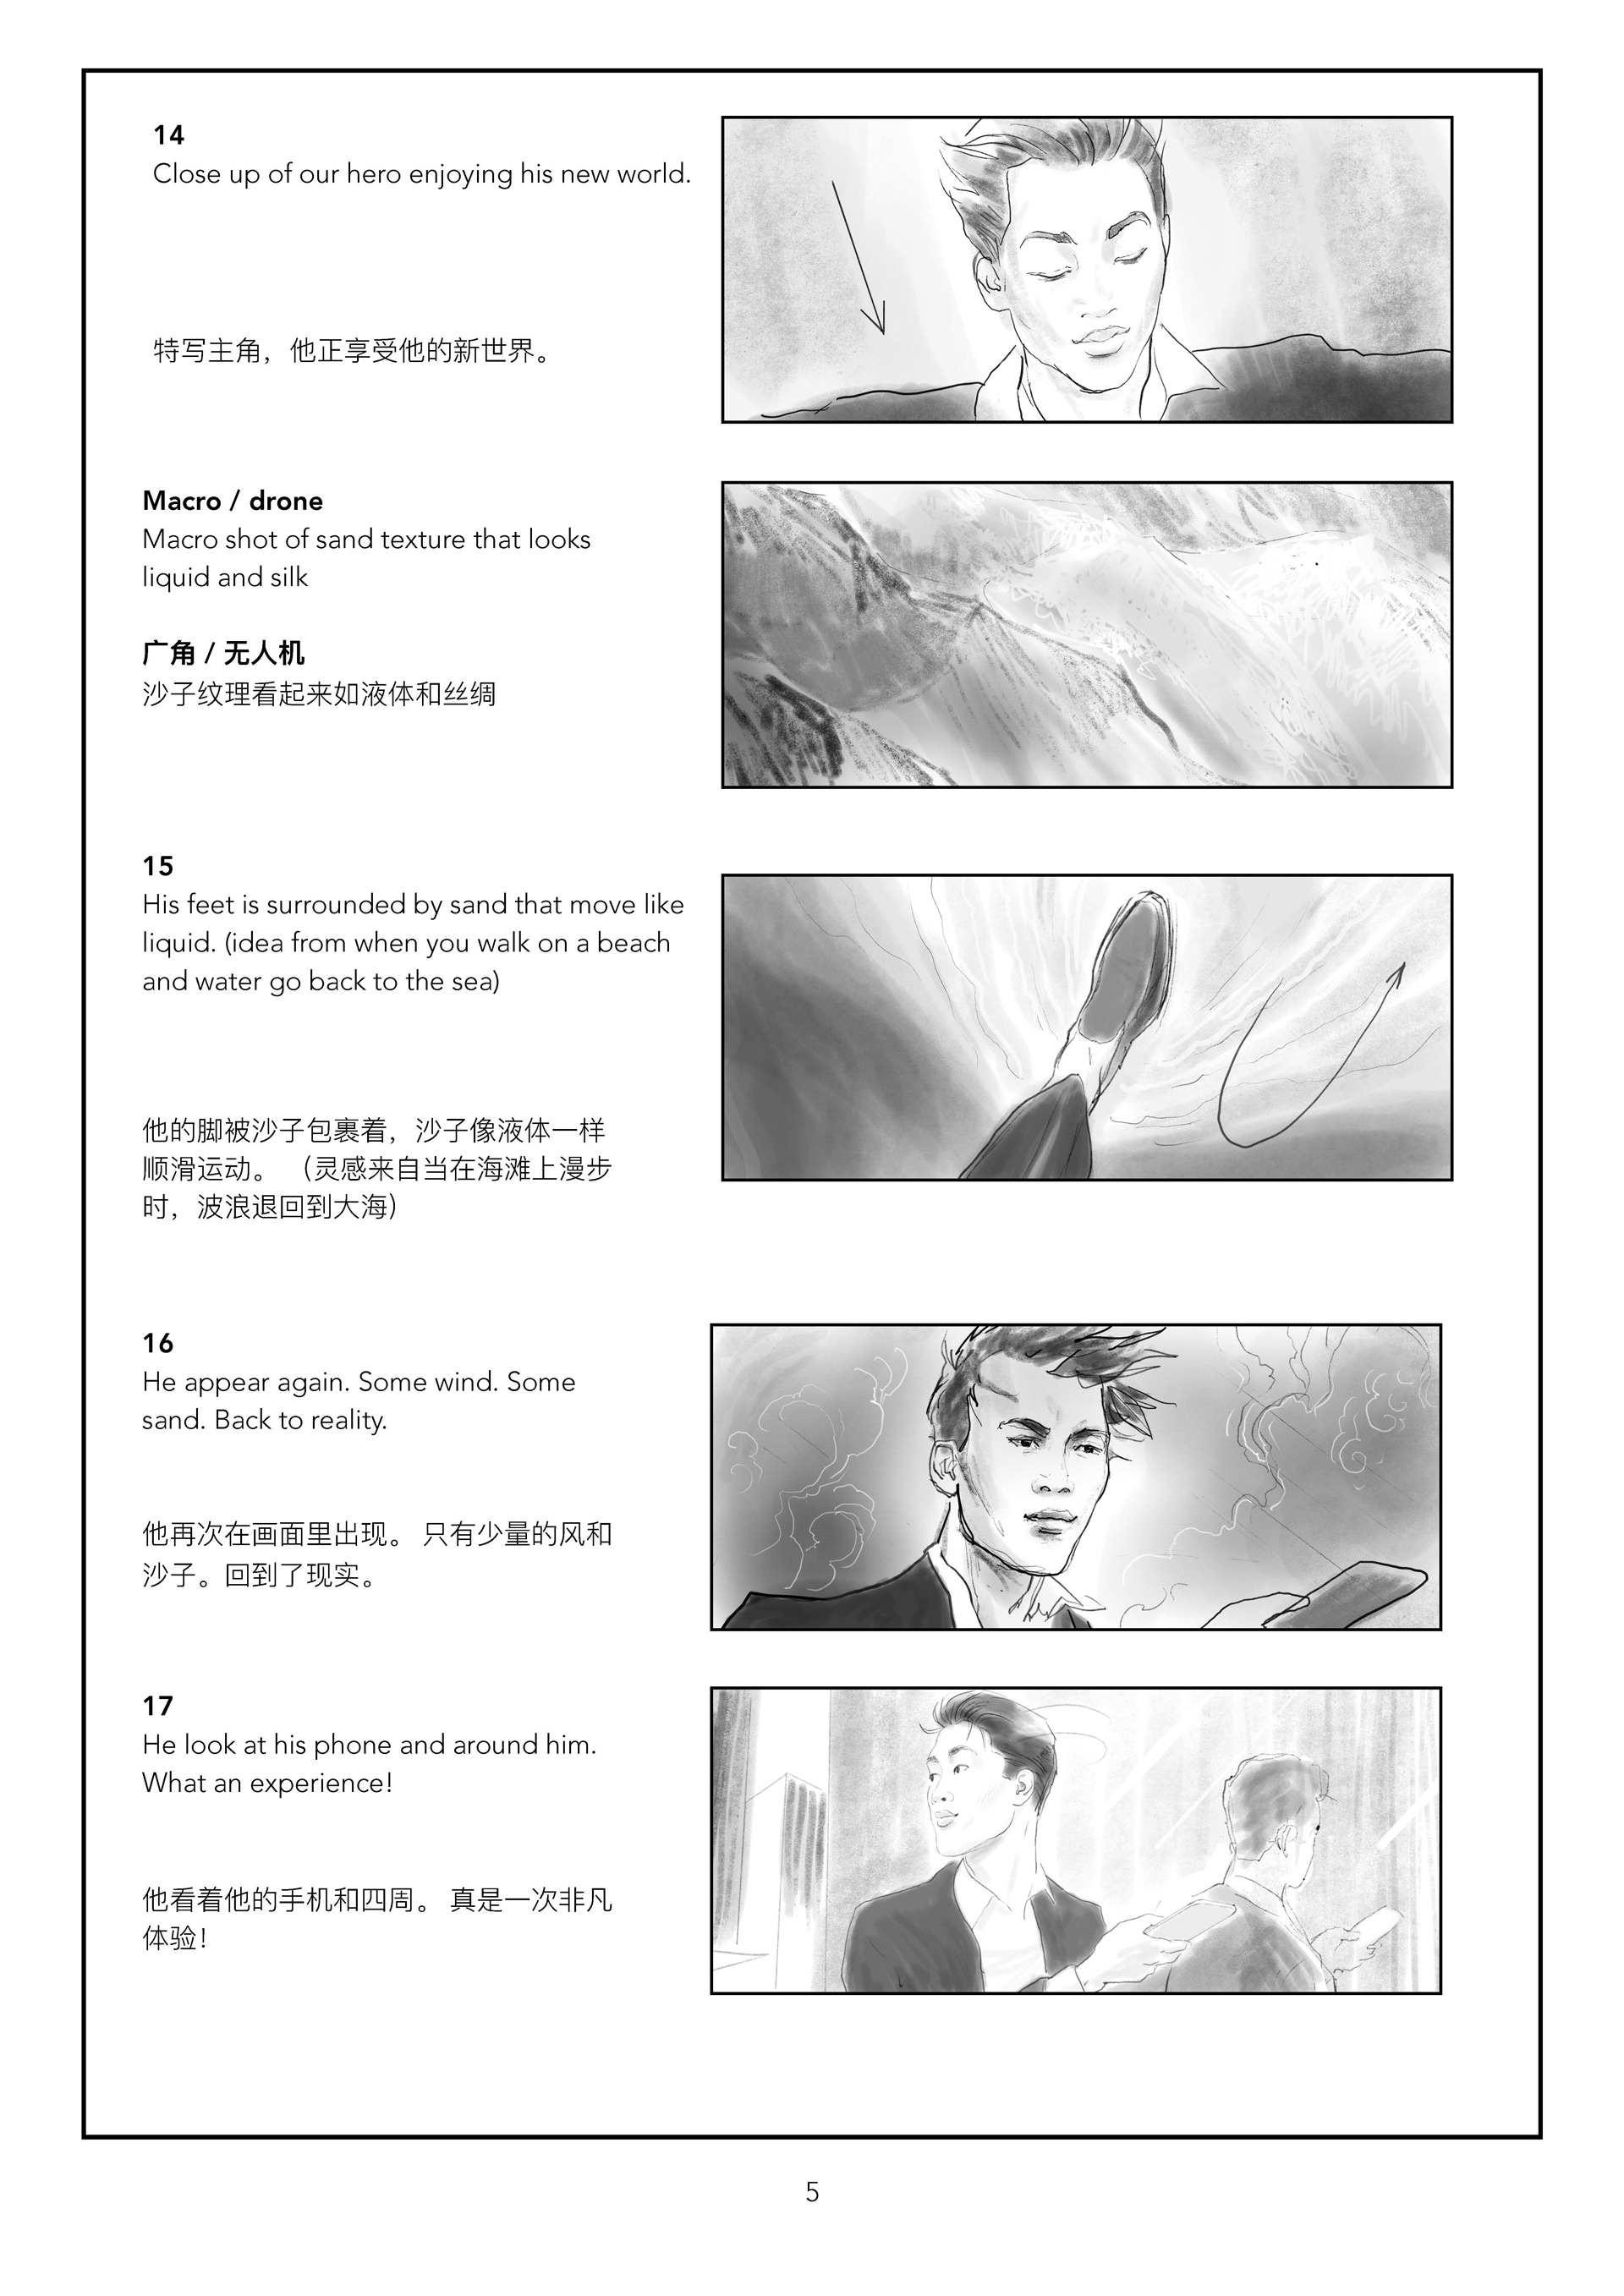 Oppo Compass storyboard 04